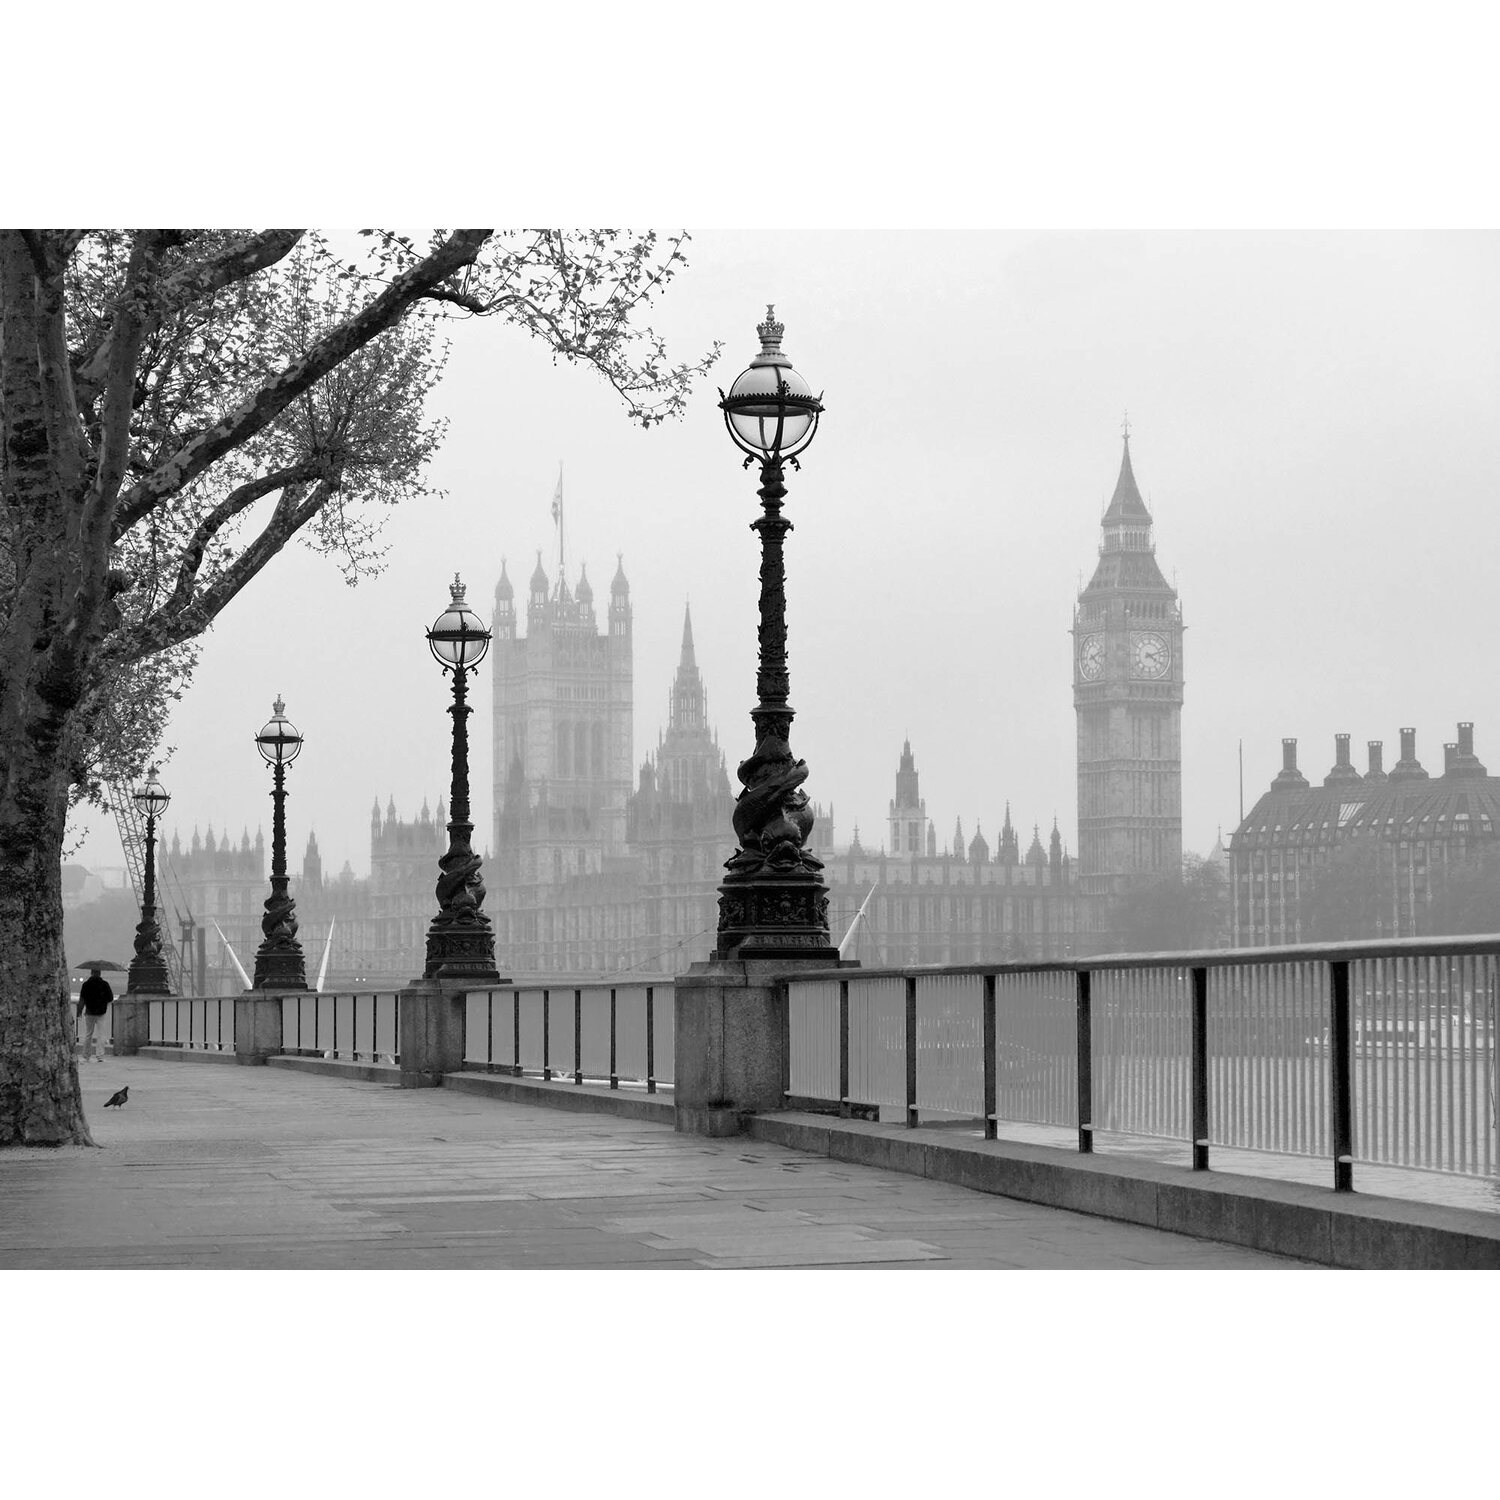 Fototapete London Nebel 366 cm x 254 cm